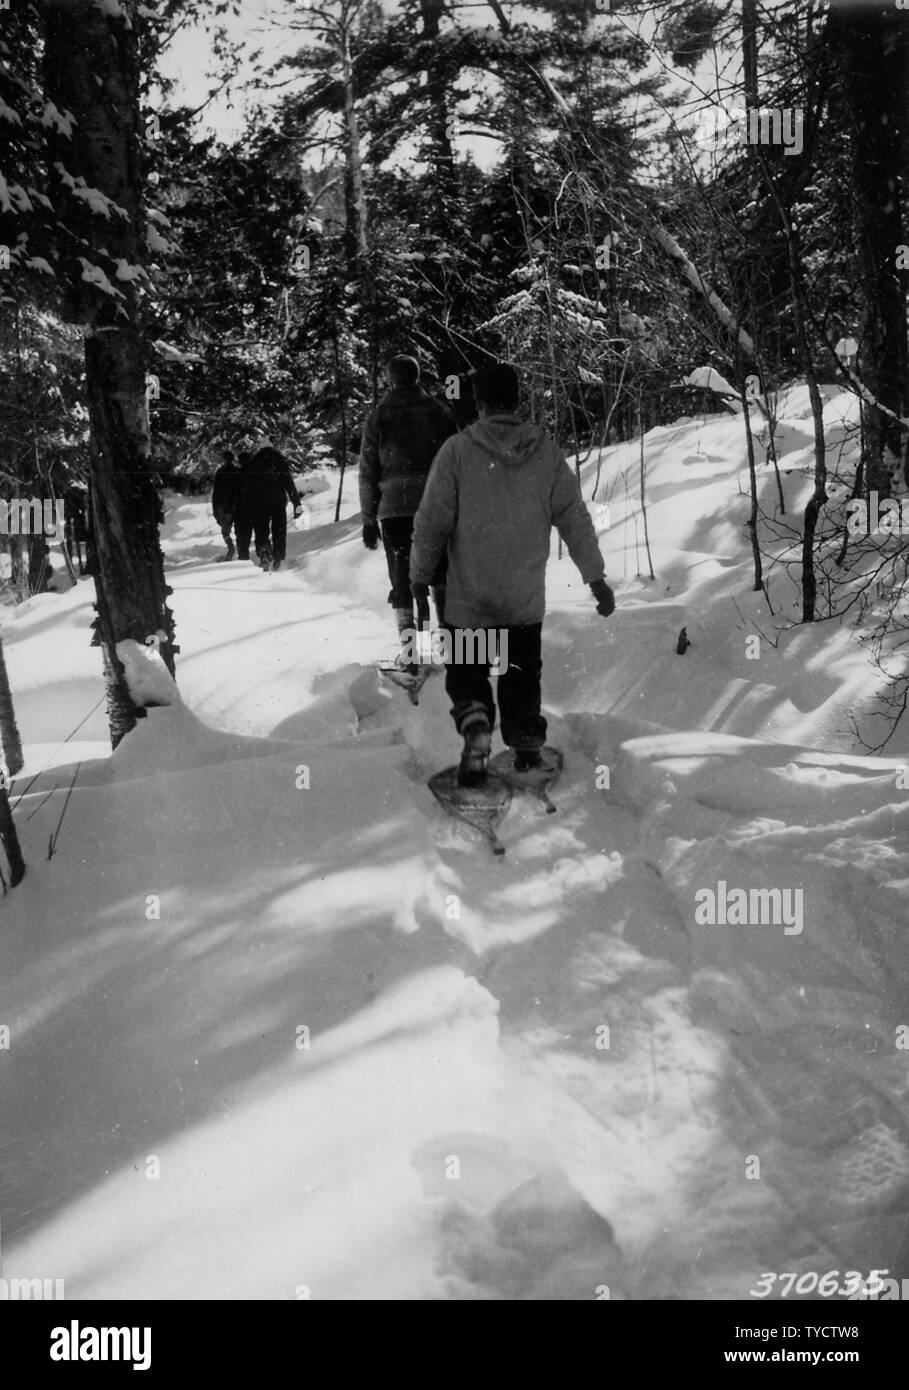 Photograph of One of the Portage Trails; Scope and content:  Original caption: On a return trip a well beaten trail makes the trip much easier. This view was taken on one of the portage trails. Stock Photo